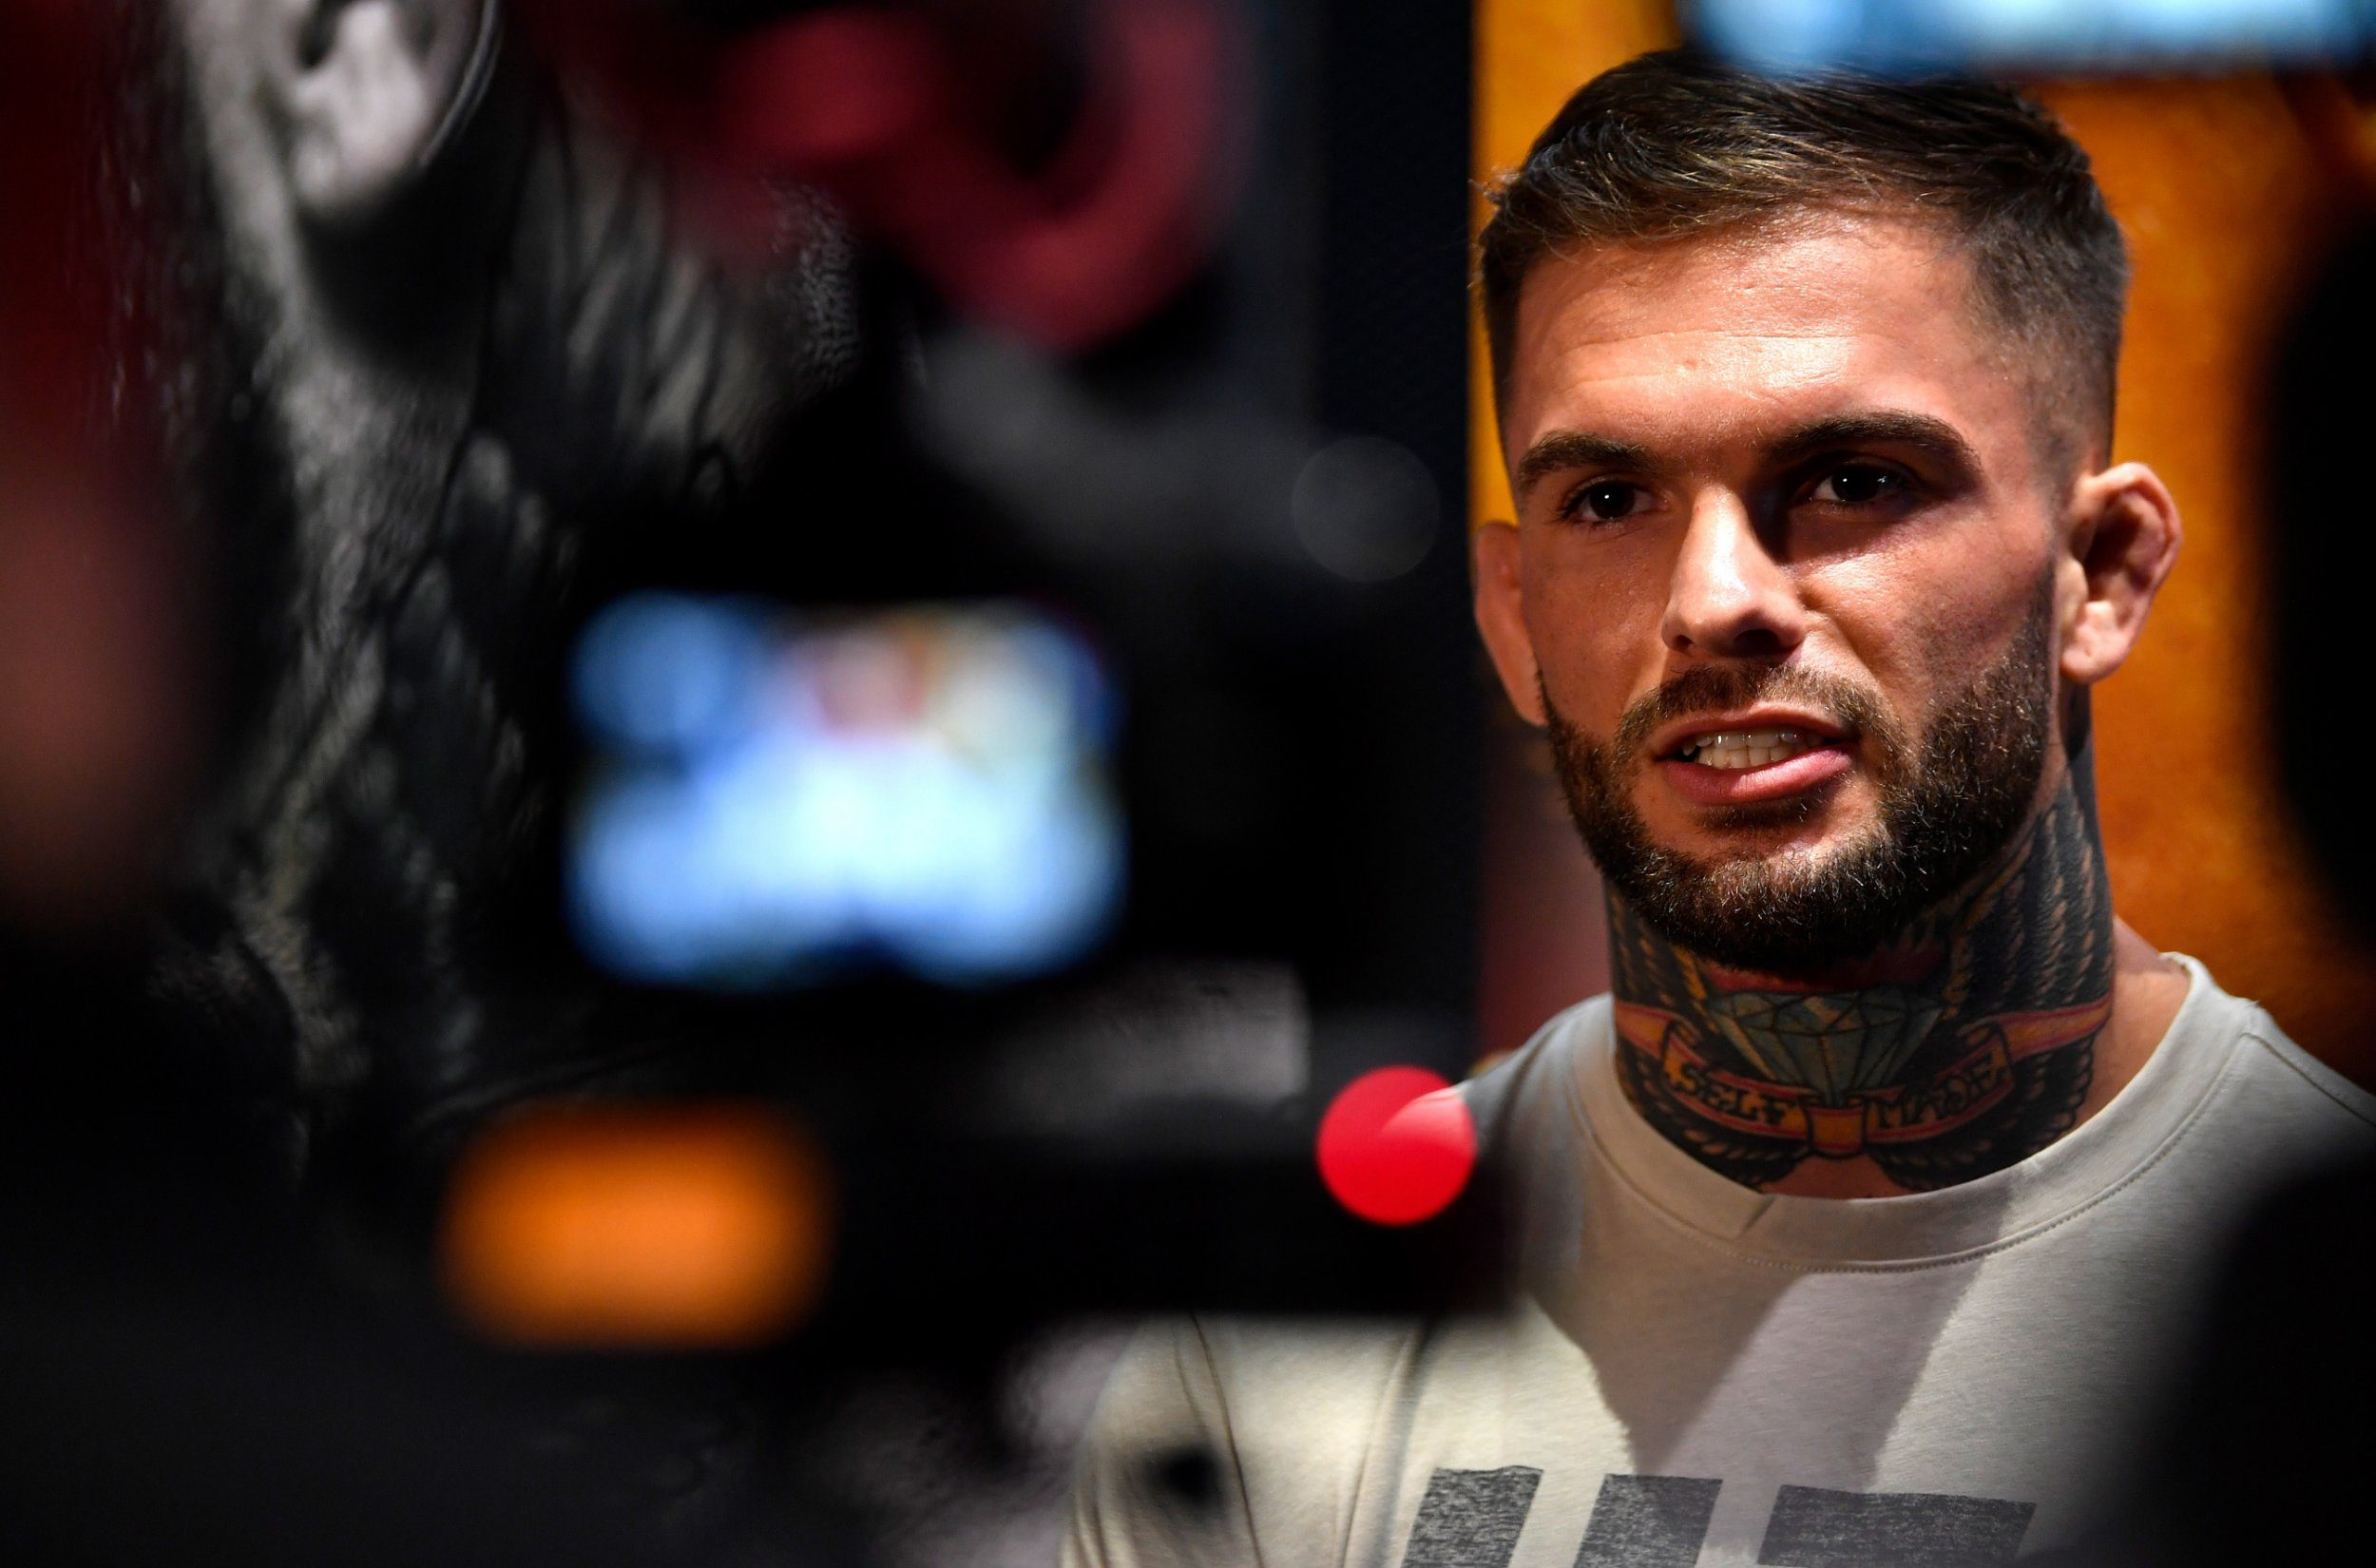 Cody Garbrandt: UFC want me to beat T.J. Dillashaw and become champion again